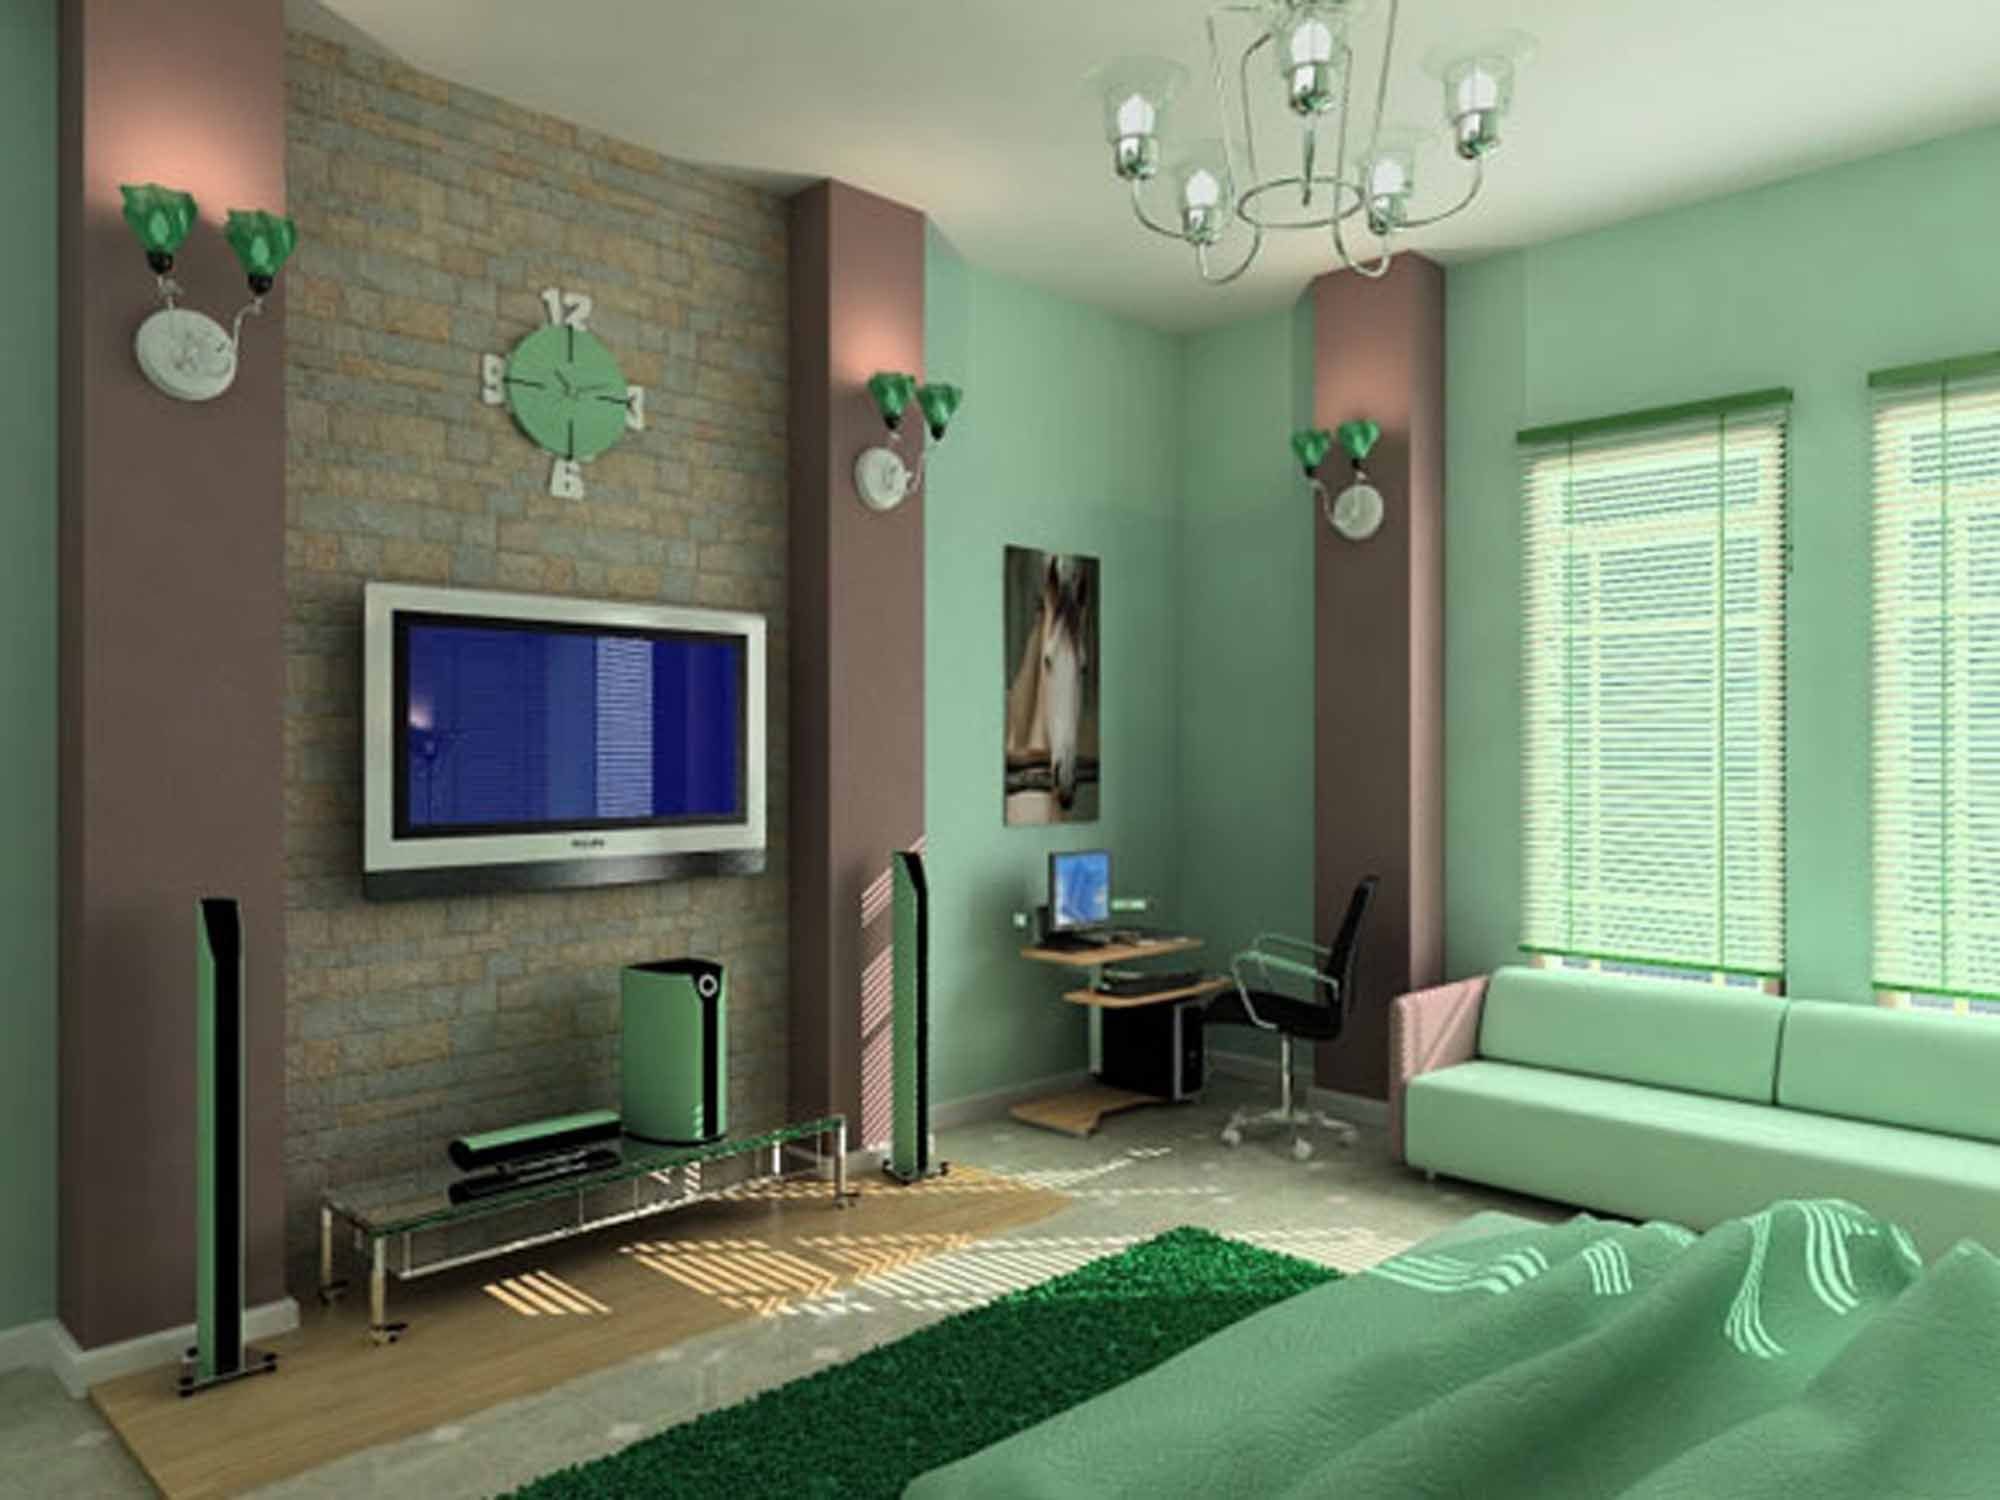 Bedroom Designs 2013 cool as a cucumber | collective home | pinterest | cucumber, green